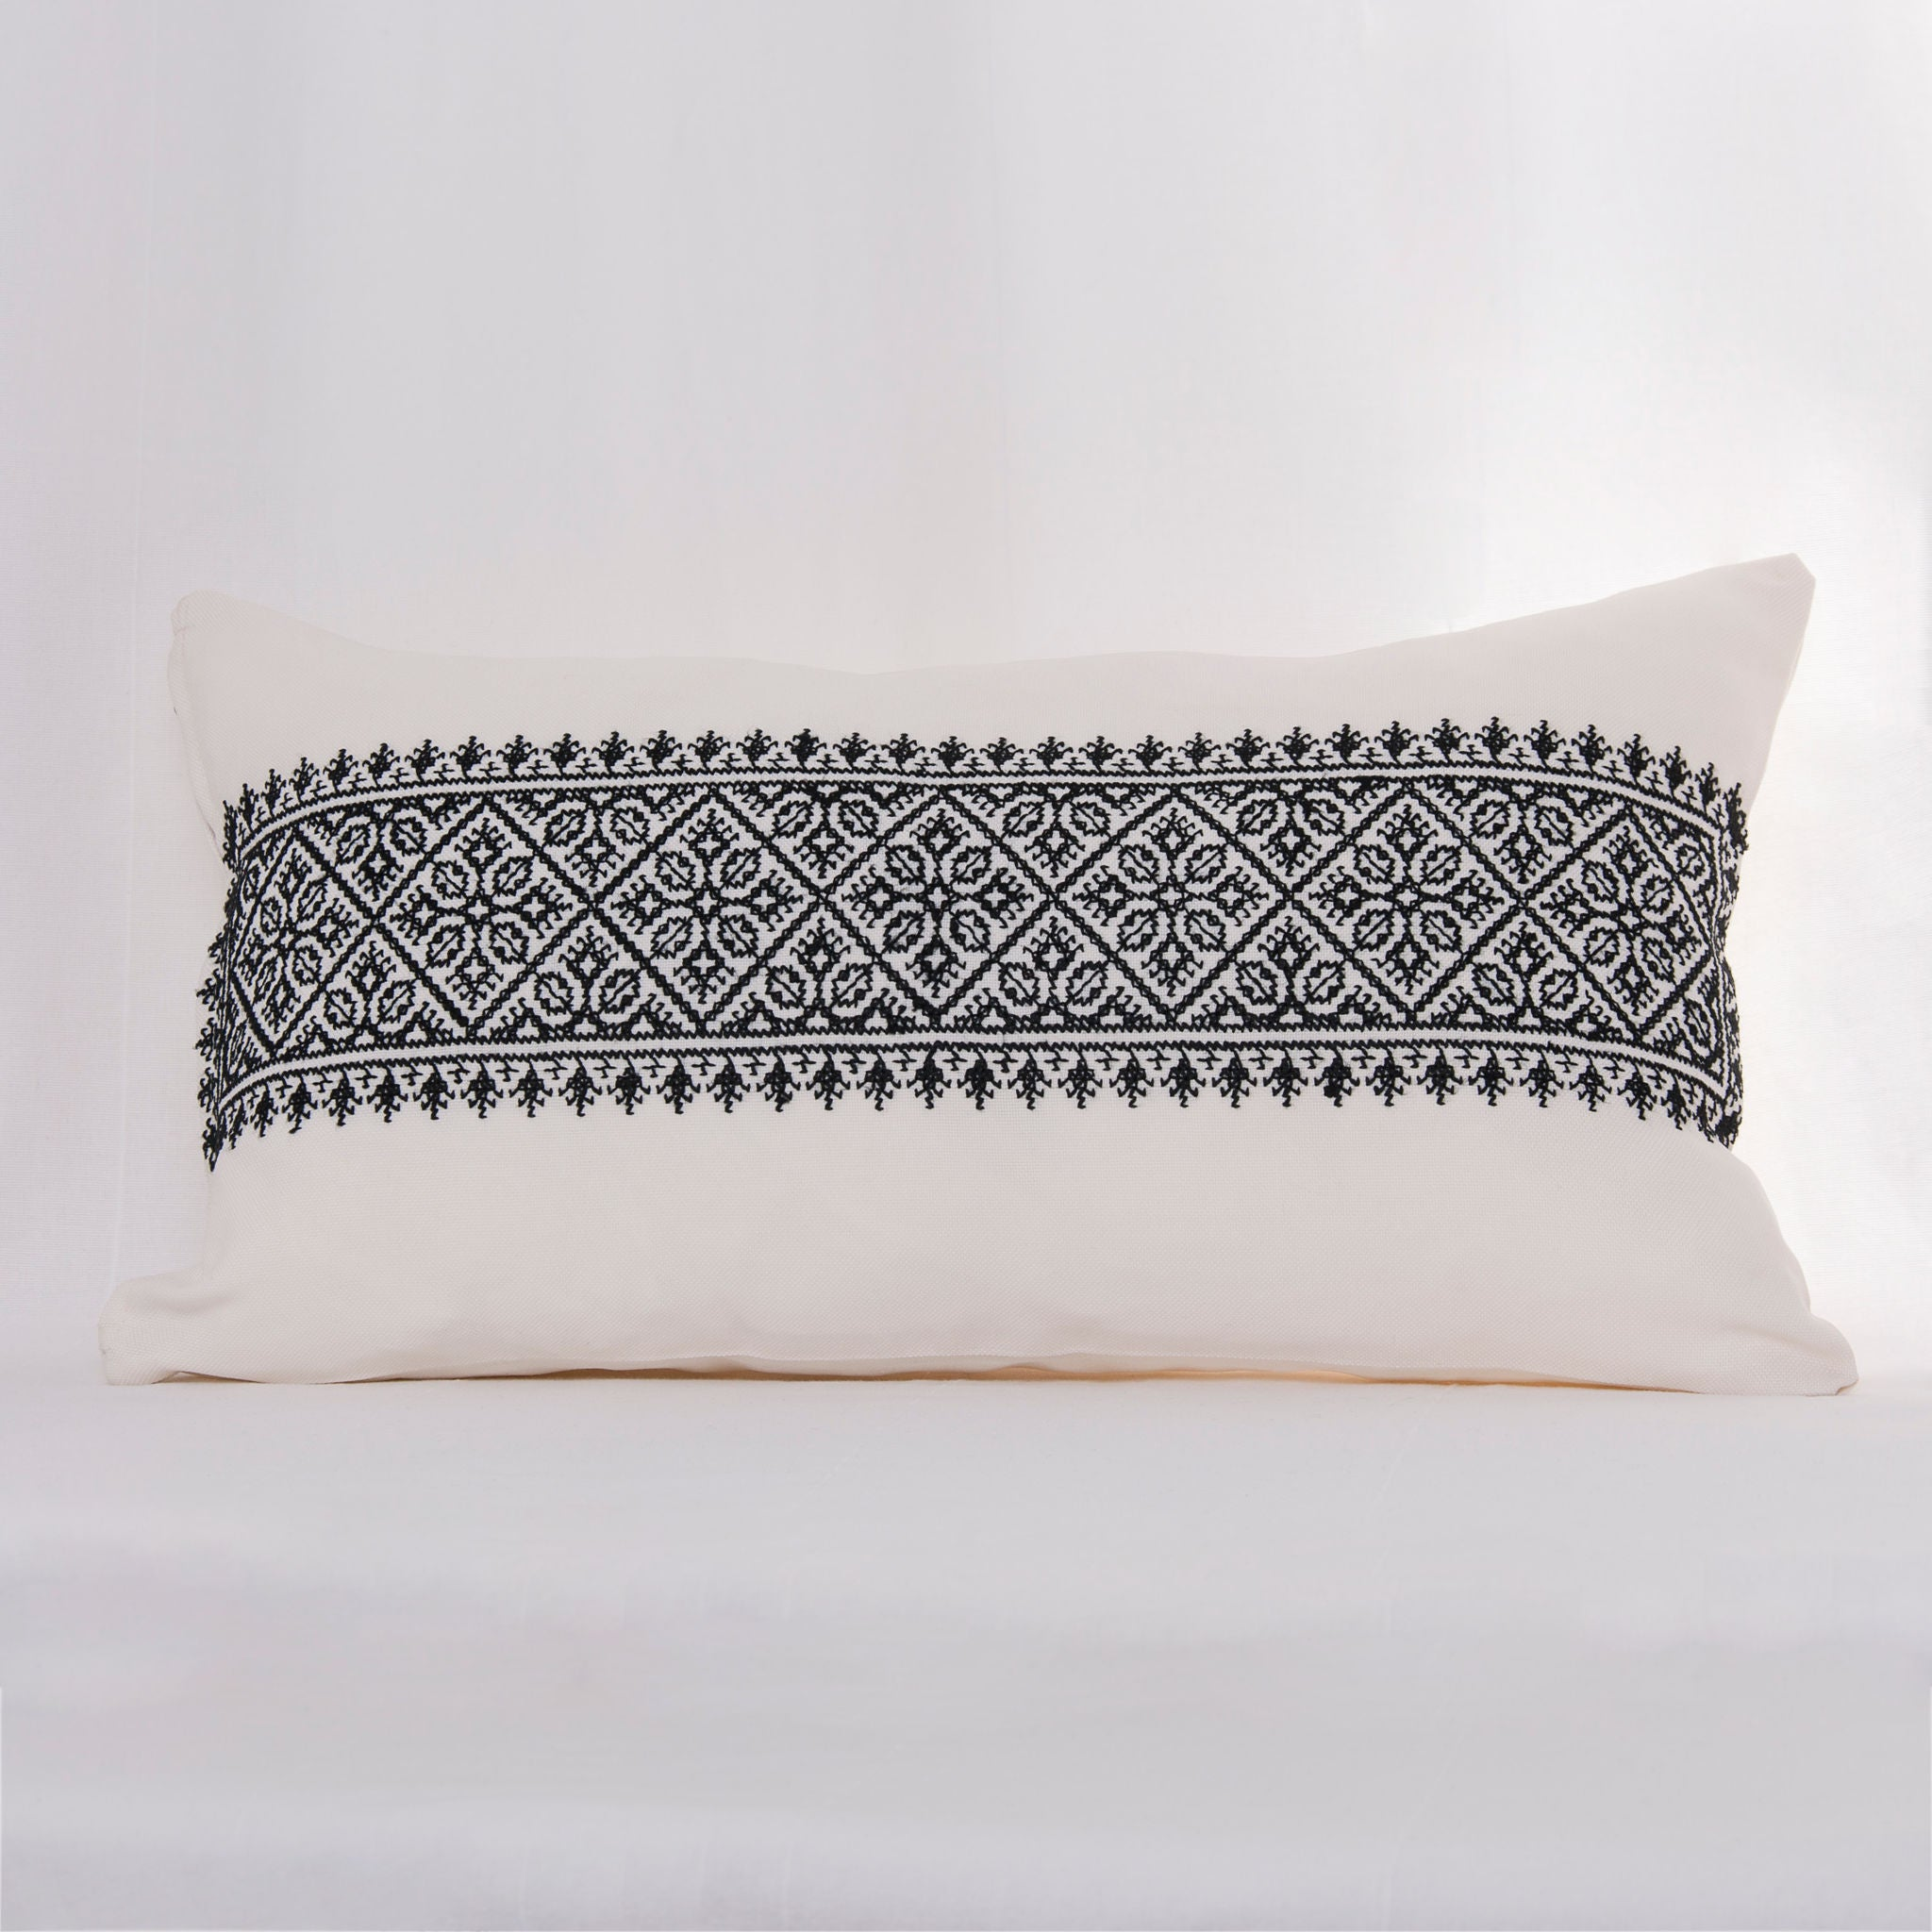 Fes-Embroidered Rectangular Cushion Cover